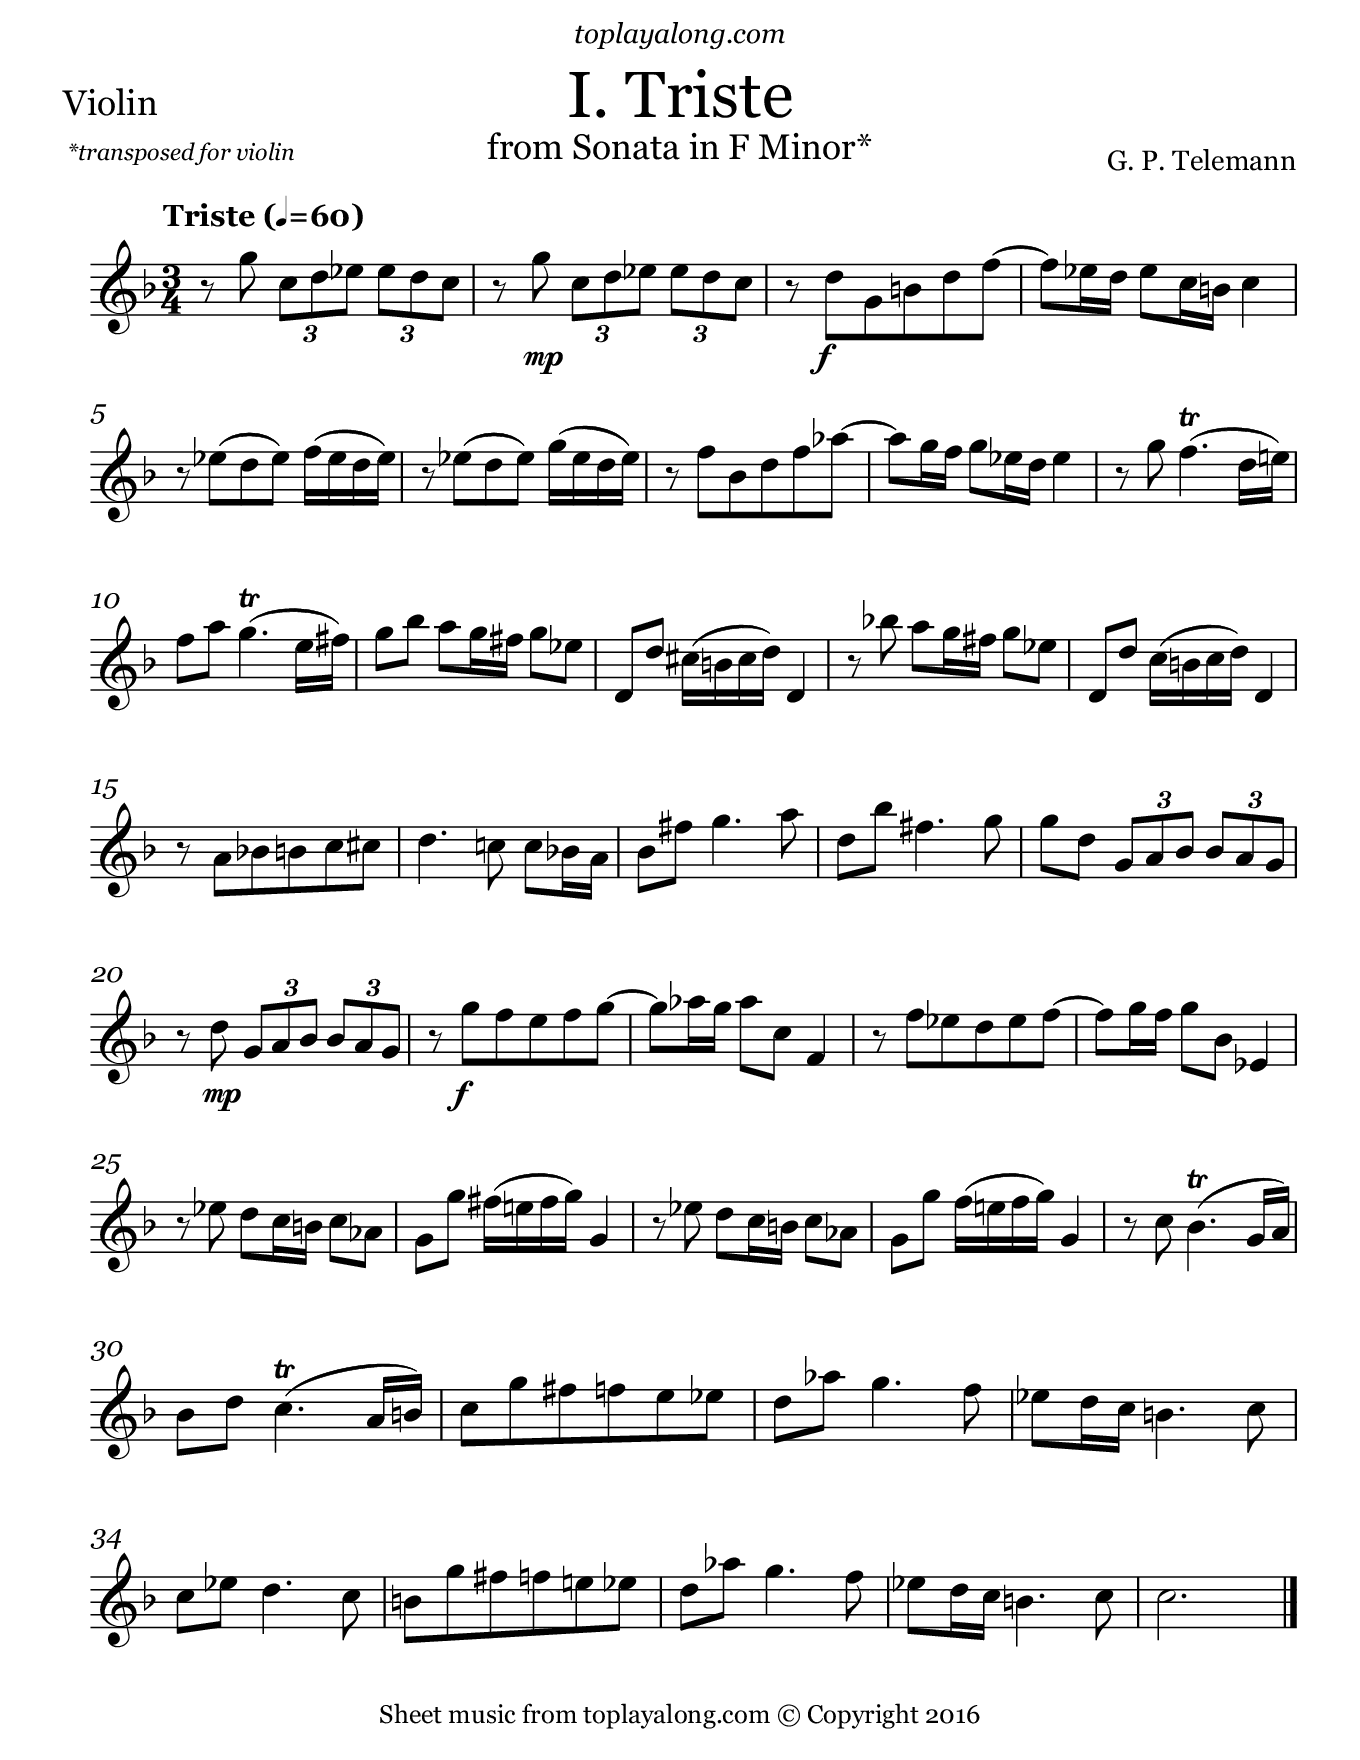 Sonata in F minor (I. Triste) by Telemann. Sheet music for Violin, page 1.